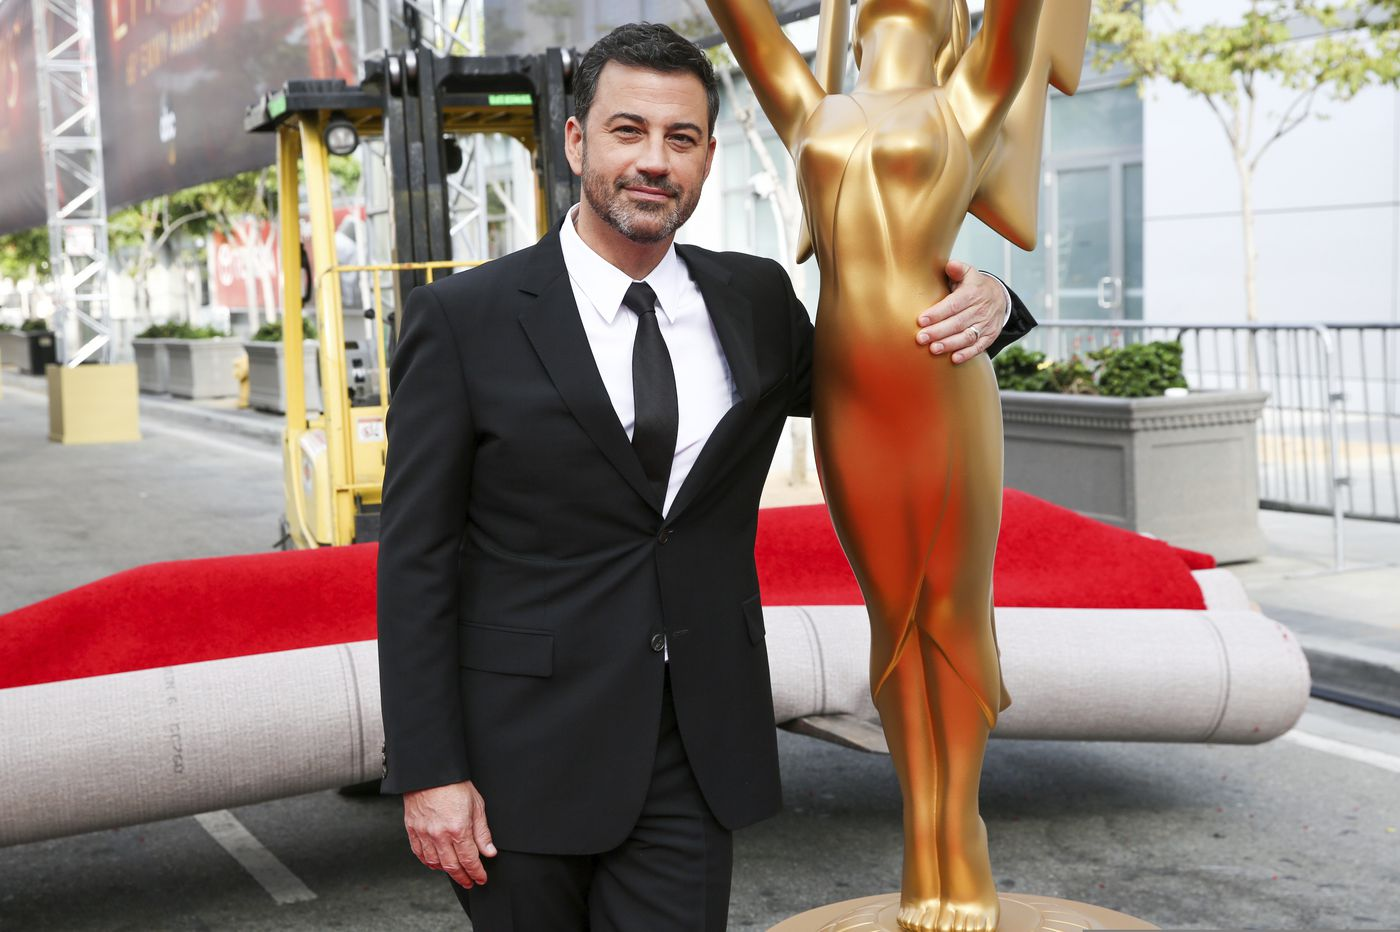 Jimmy Kimmel to host Emmys, first major awards show of pandemic